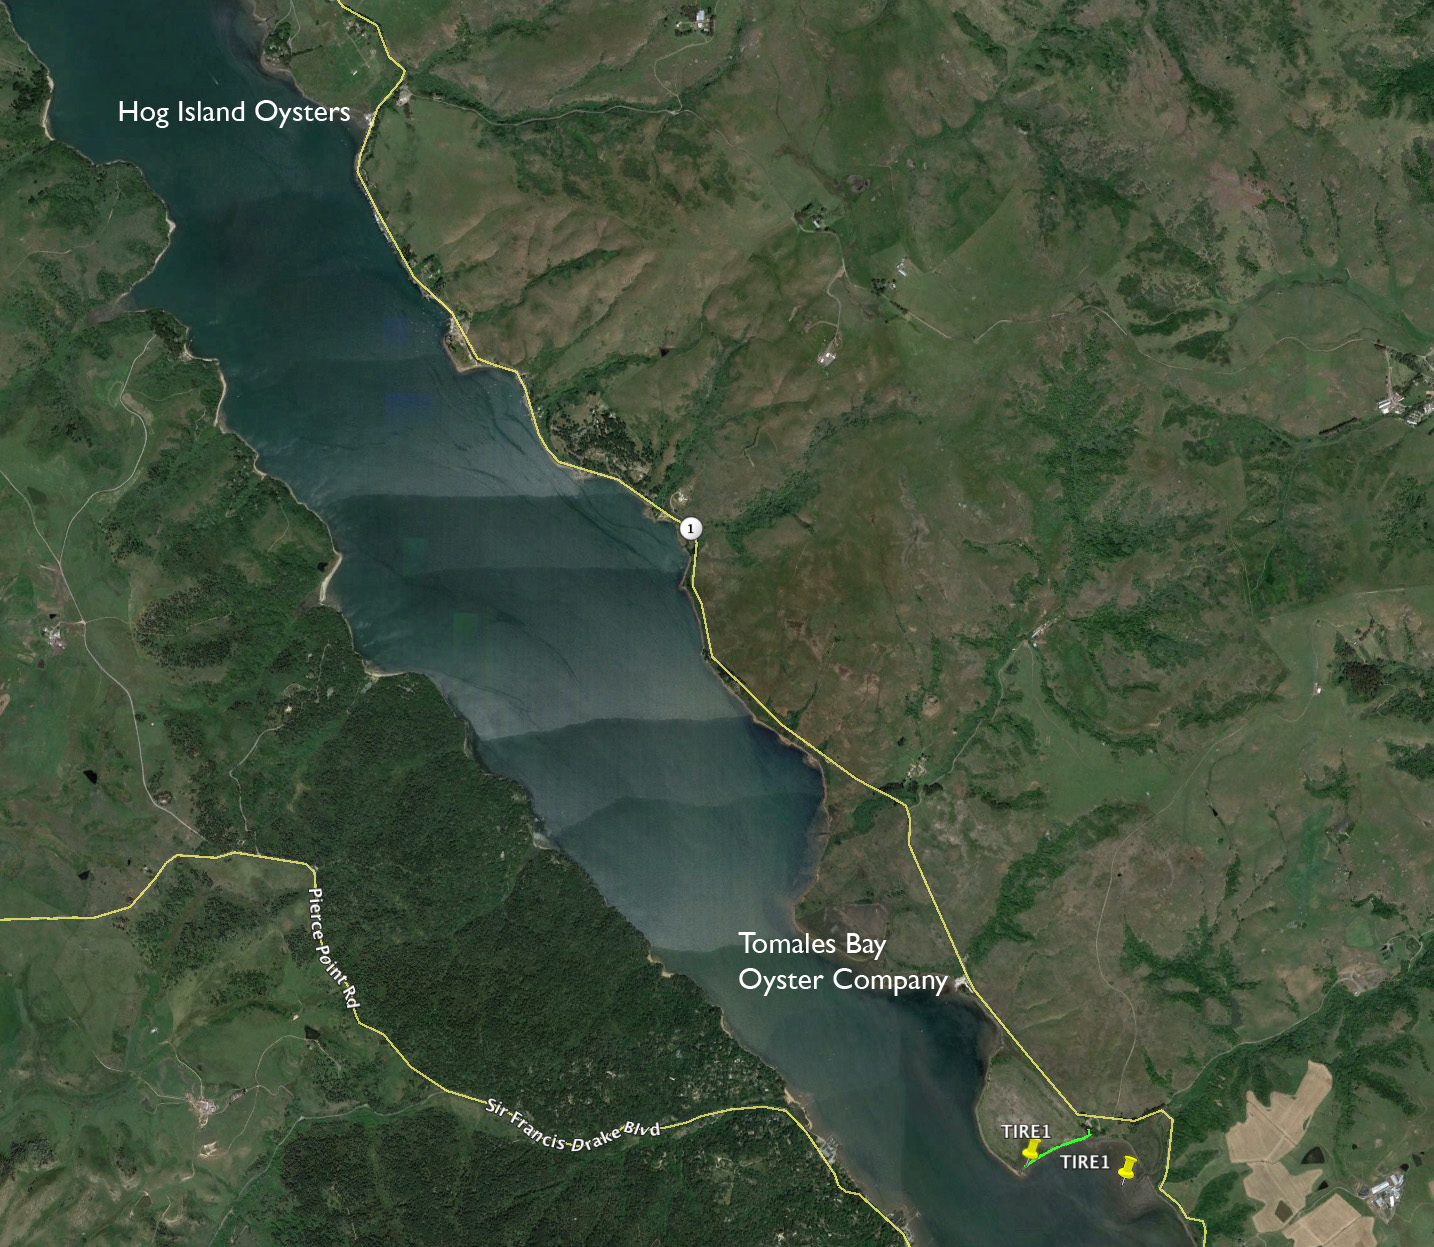 Lower right of this image shows where I attached the floats (yellow pin to the right) and where it drifted with the high tide the next morning a third of a mile away. - - Kudos to Hog Island Oysters for taking a leadership role in cleaning up their oyster debris, as well as the errant trash of others.